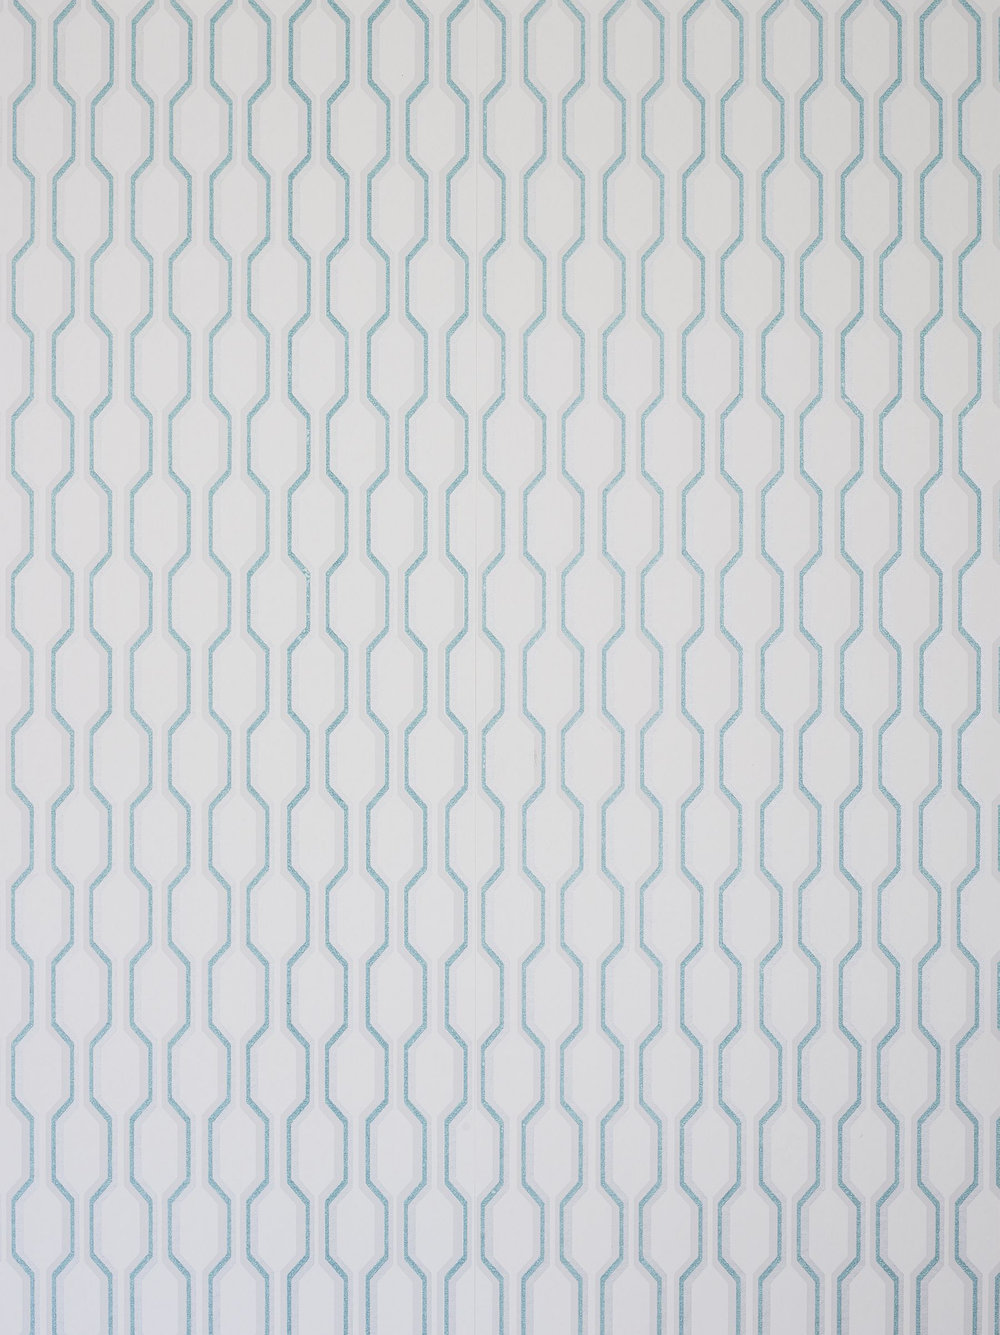 Casadeco Honeycomb Aqua Wallpaper - Product code: 26486120